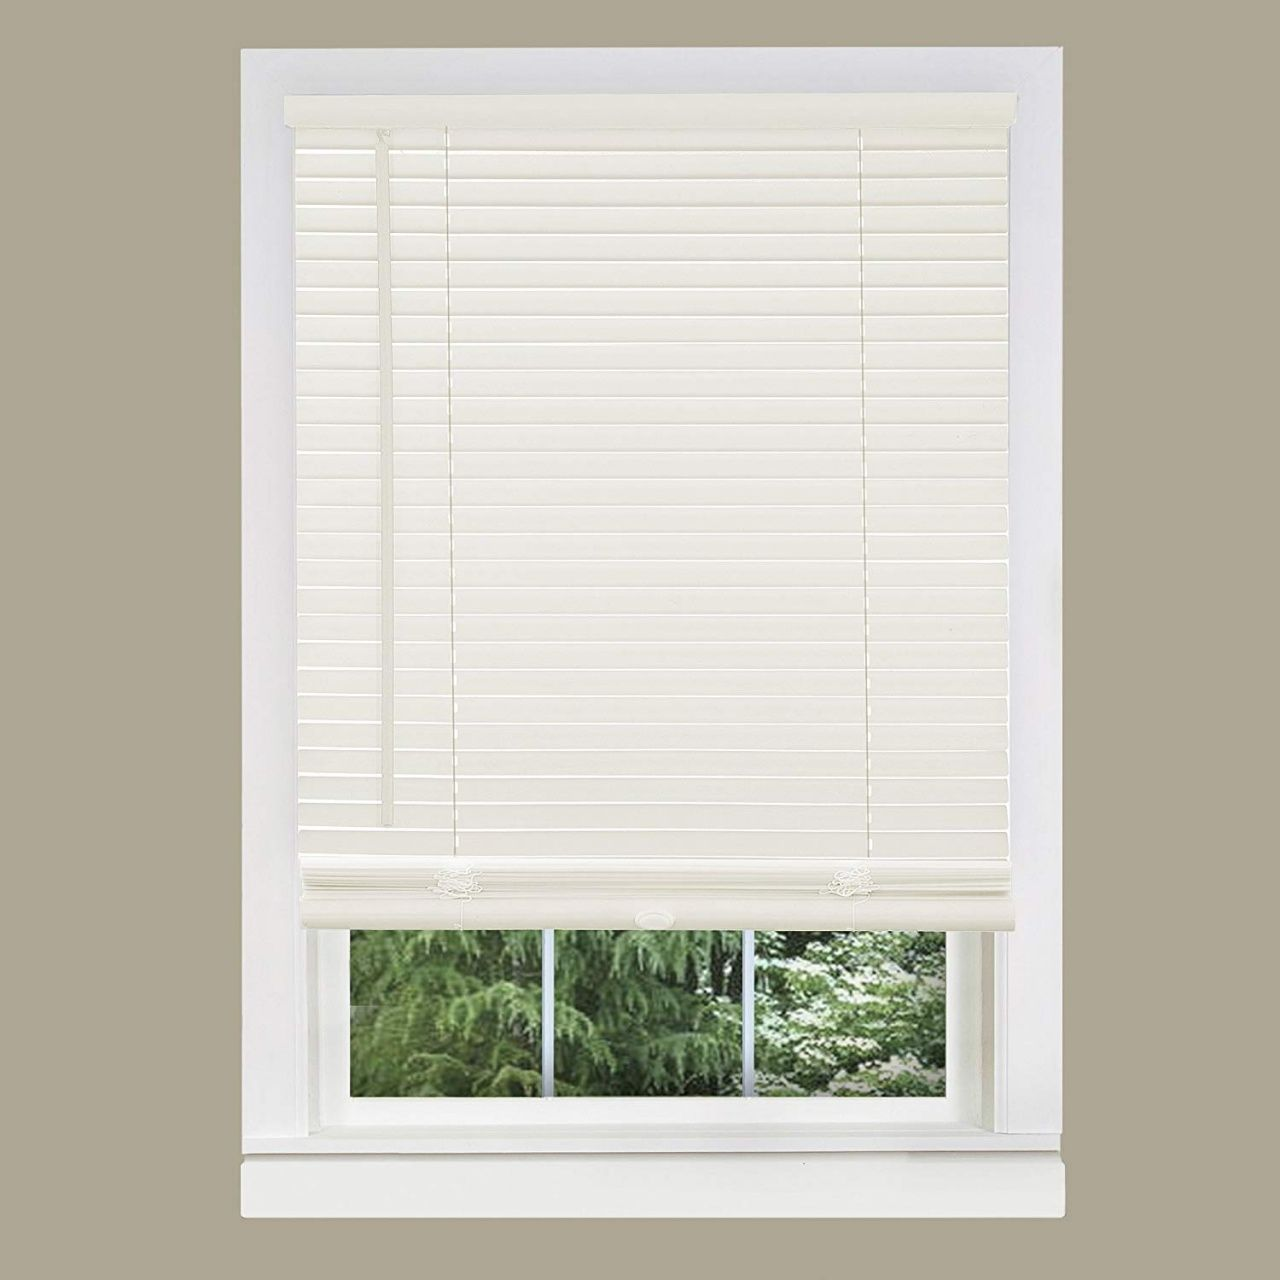 2 Inch Faux Wood Blinds Best Price In 2020 Vinyl Mini Blinds Blinds Cordless Blinds